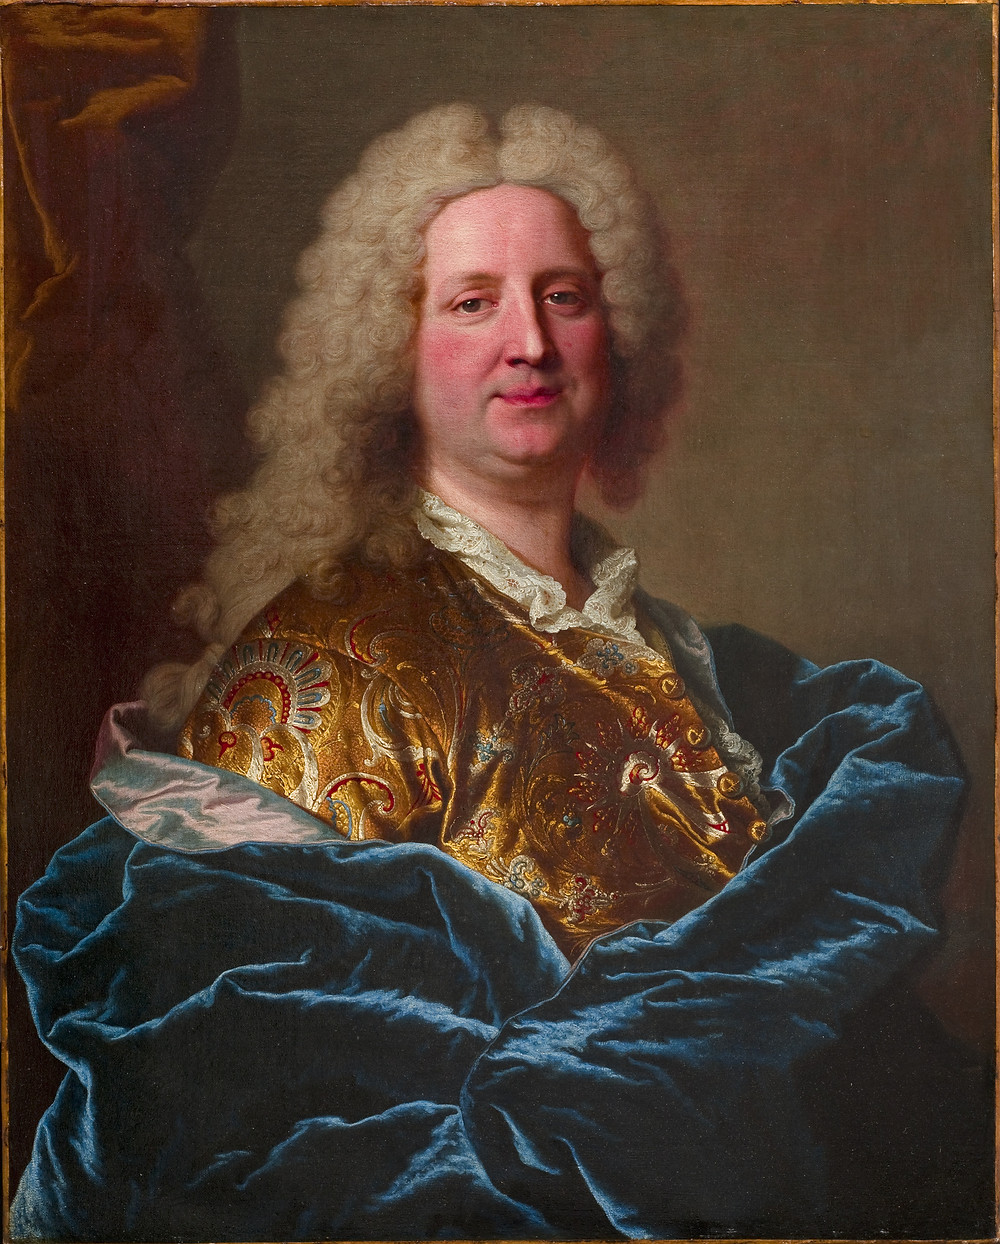 Hyacinthe Rigaud, Portrait d'Eusèbe Jacques Chaspoux, 1733, The Horvitz Collection